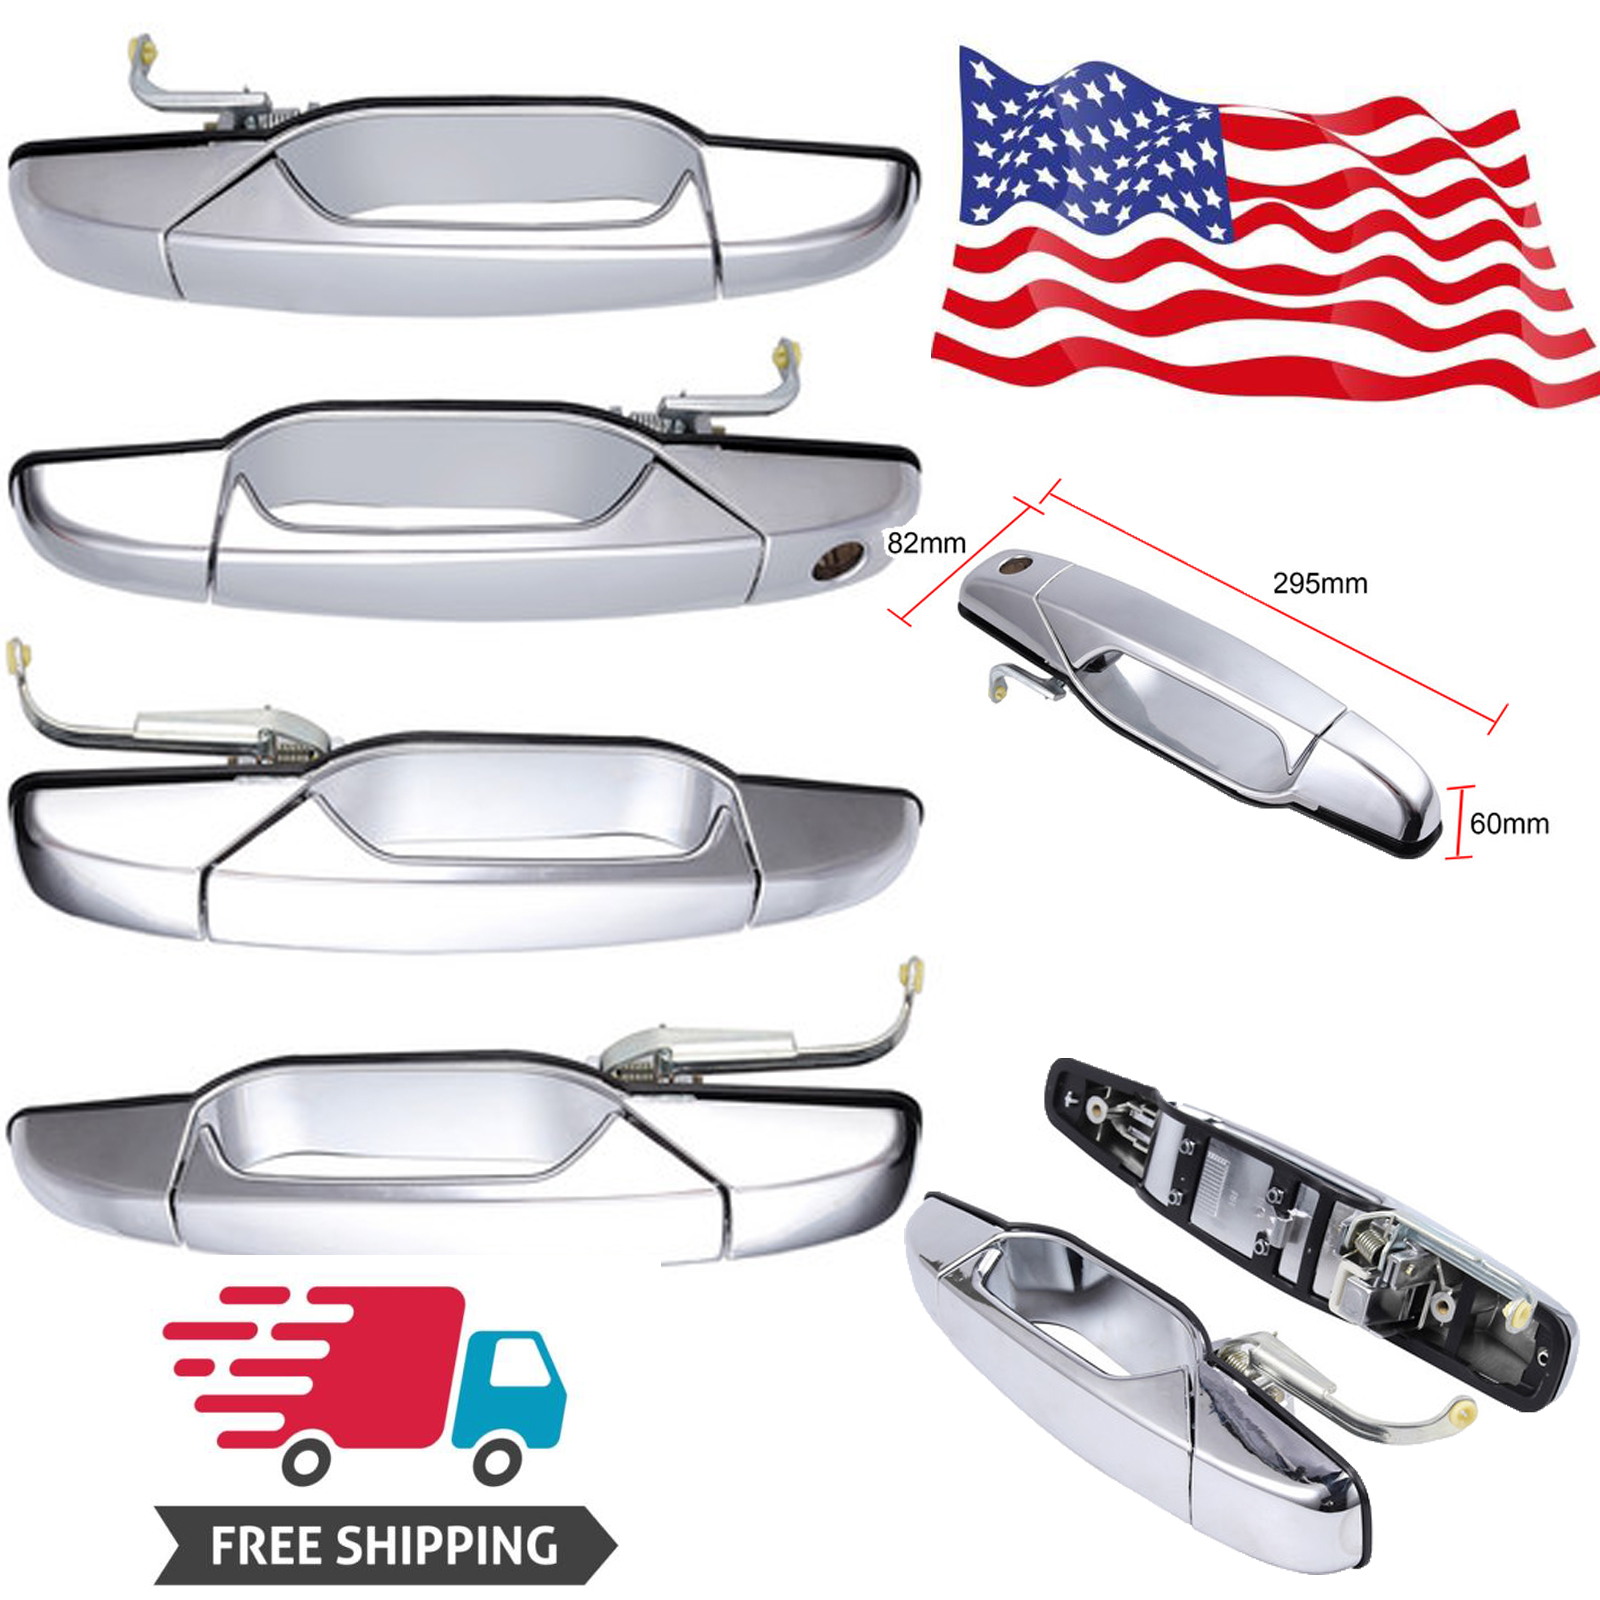 Without Passenger Keyhole Covers for 2007 08 09 2010 11 12 2013 Cadillac Escalade//Chevy Avalanche//Silverado//Tahoe//Suburban A-PADS for Chrome TOP Mirror Door Handle